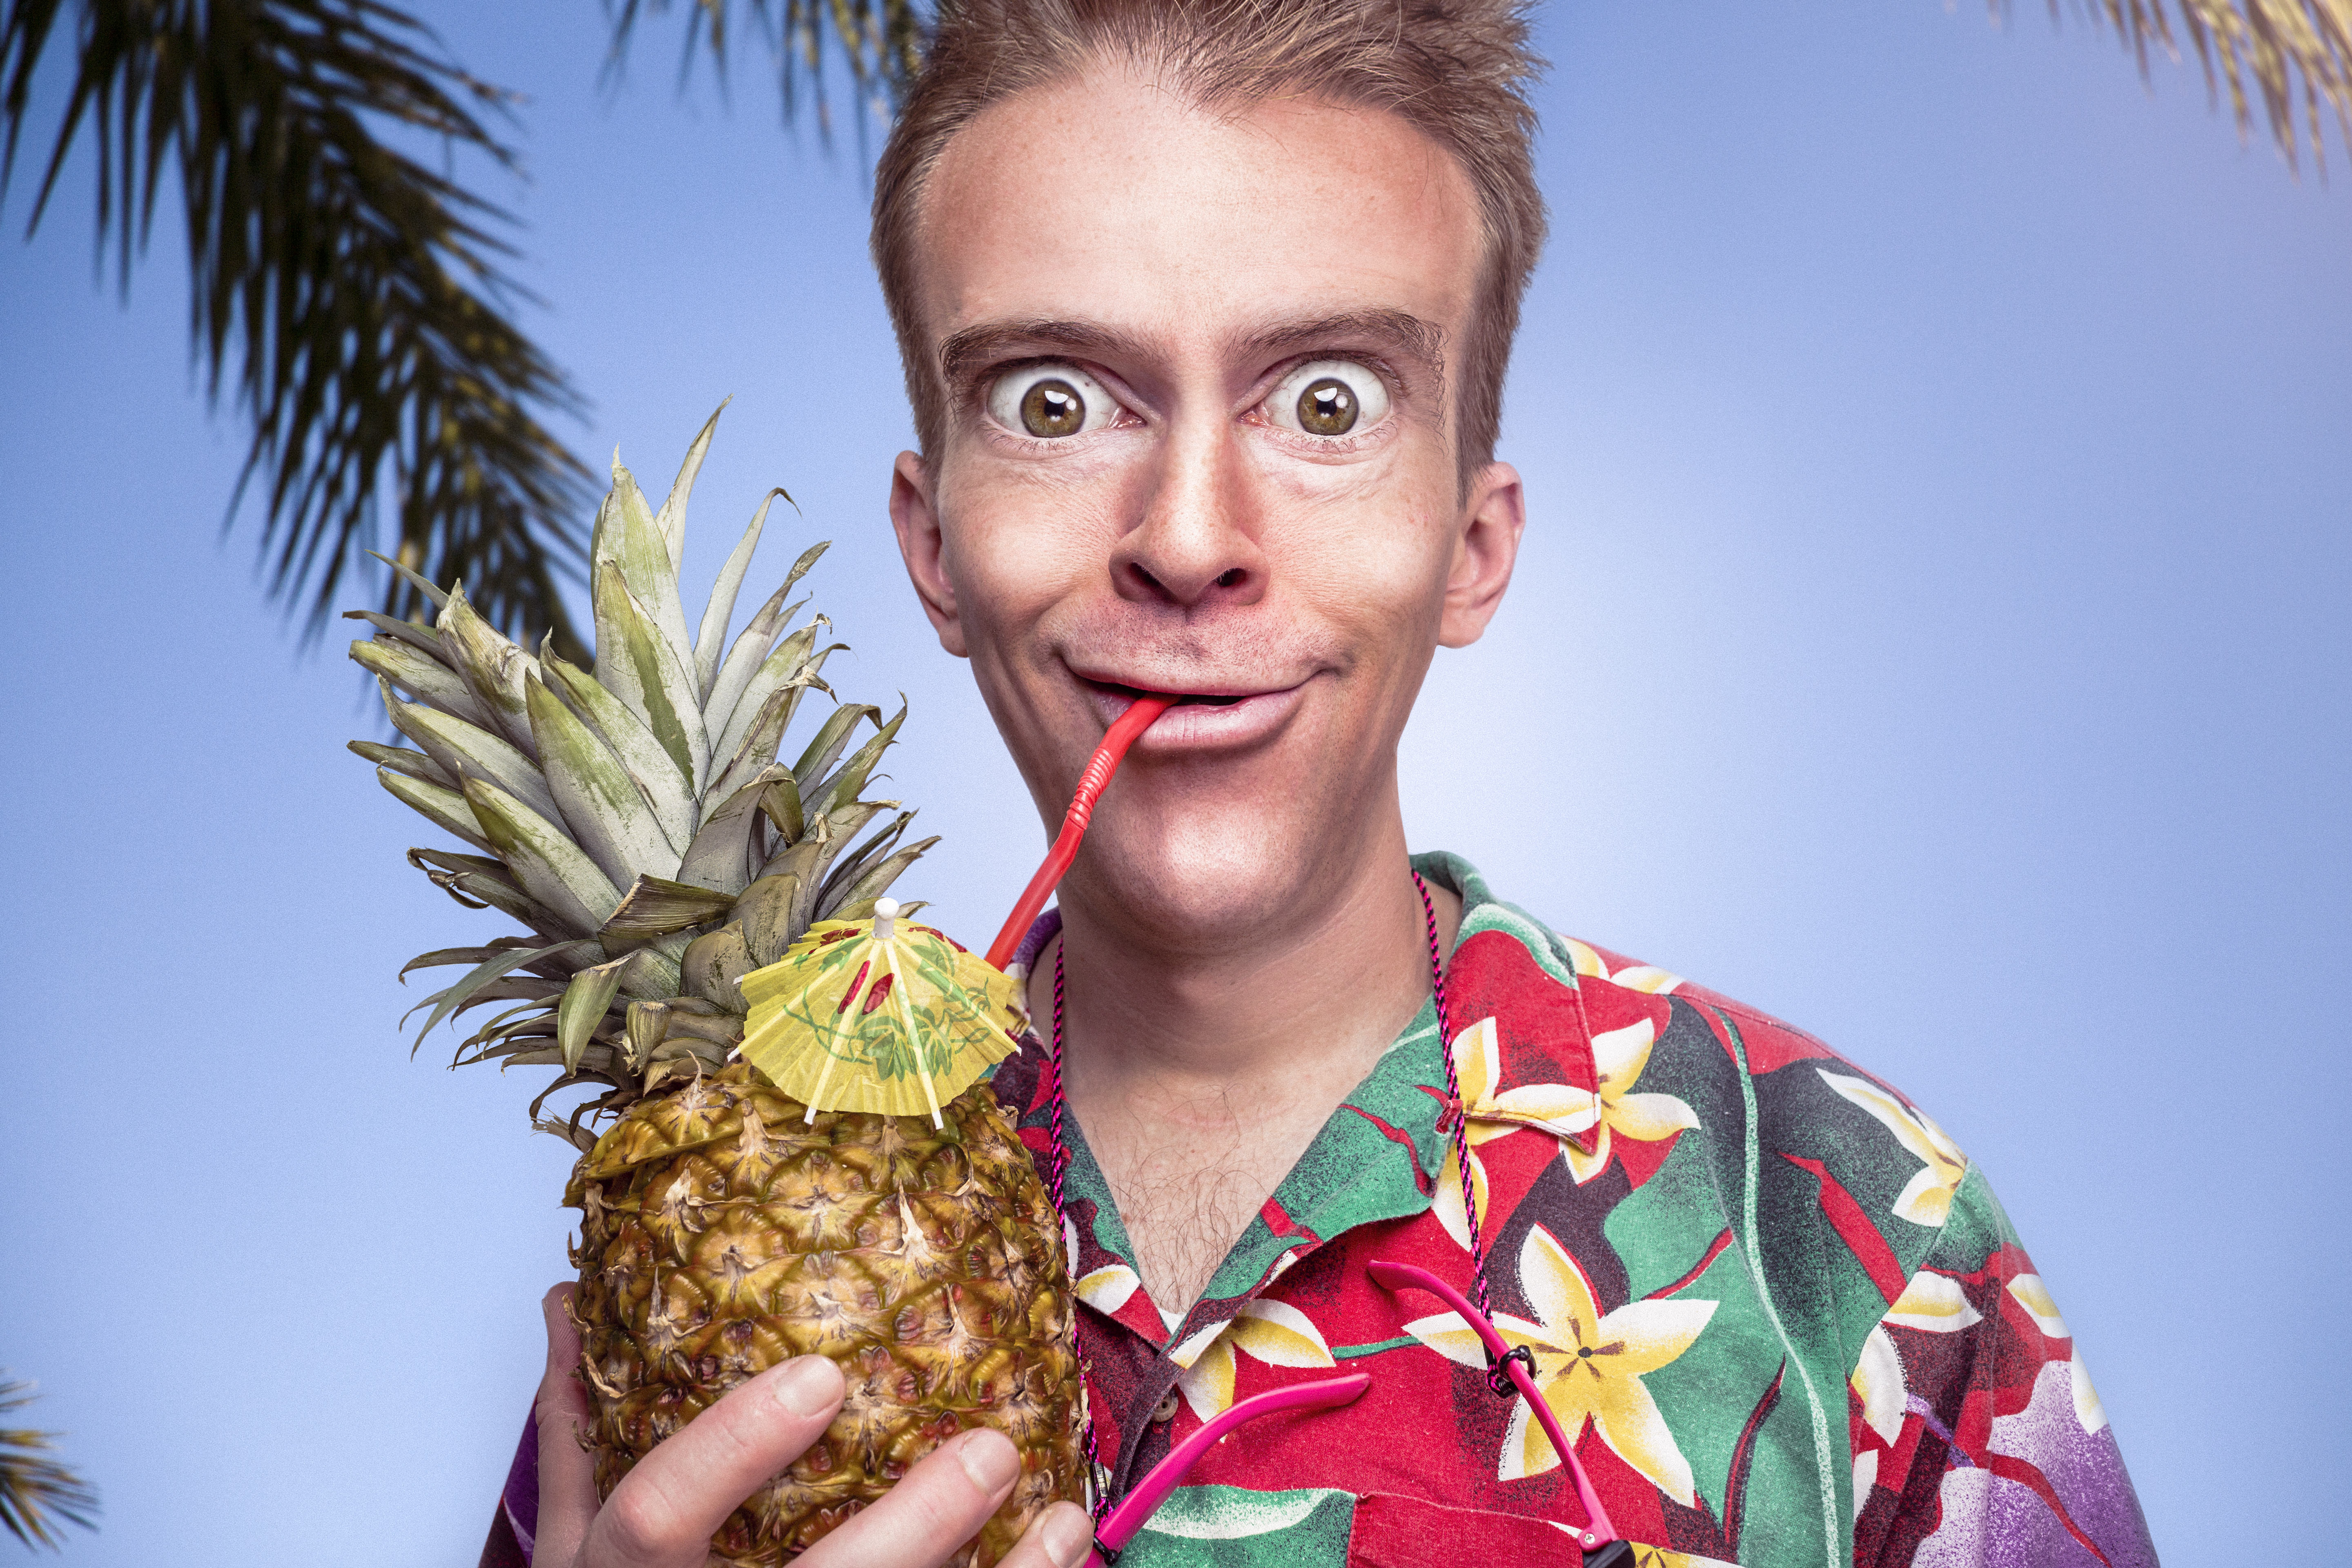 odd man drinking from a pineapple